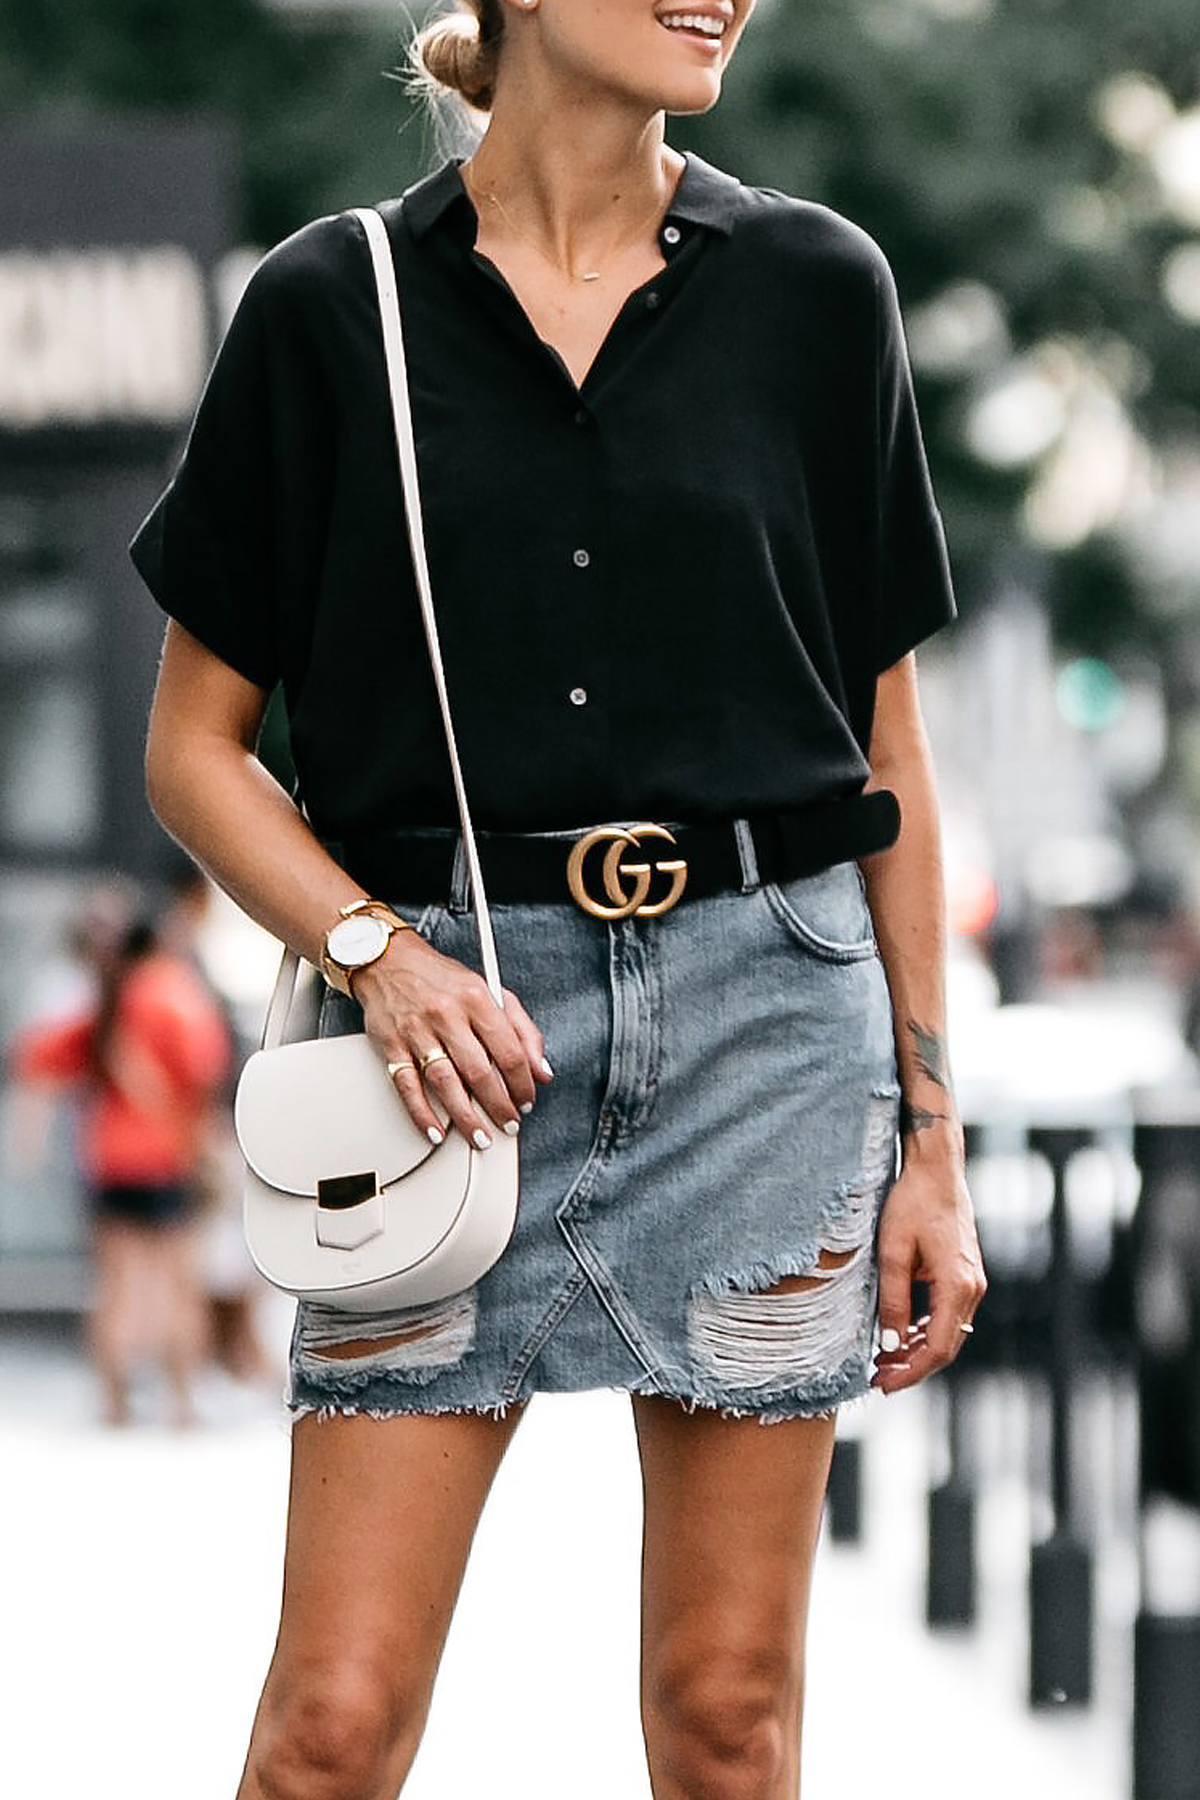 Everlane Black Short Sleeve Shirt Topshop Ripped Denim Skirt Outfit Gucci Marmont Belt Celine Trotteur White Handbag Fashion Jackson Dallas Blogger Fashion Blogger Street Style